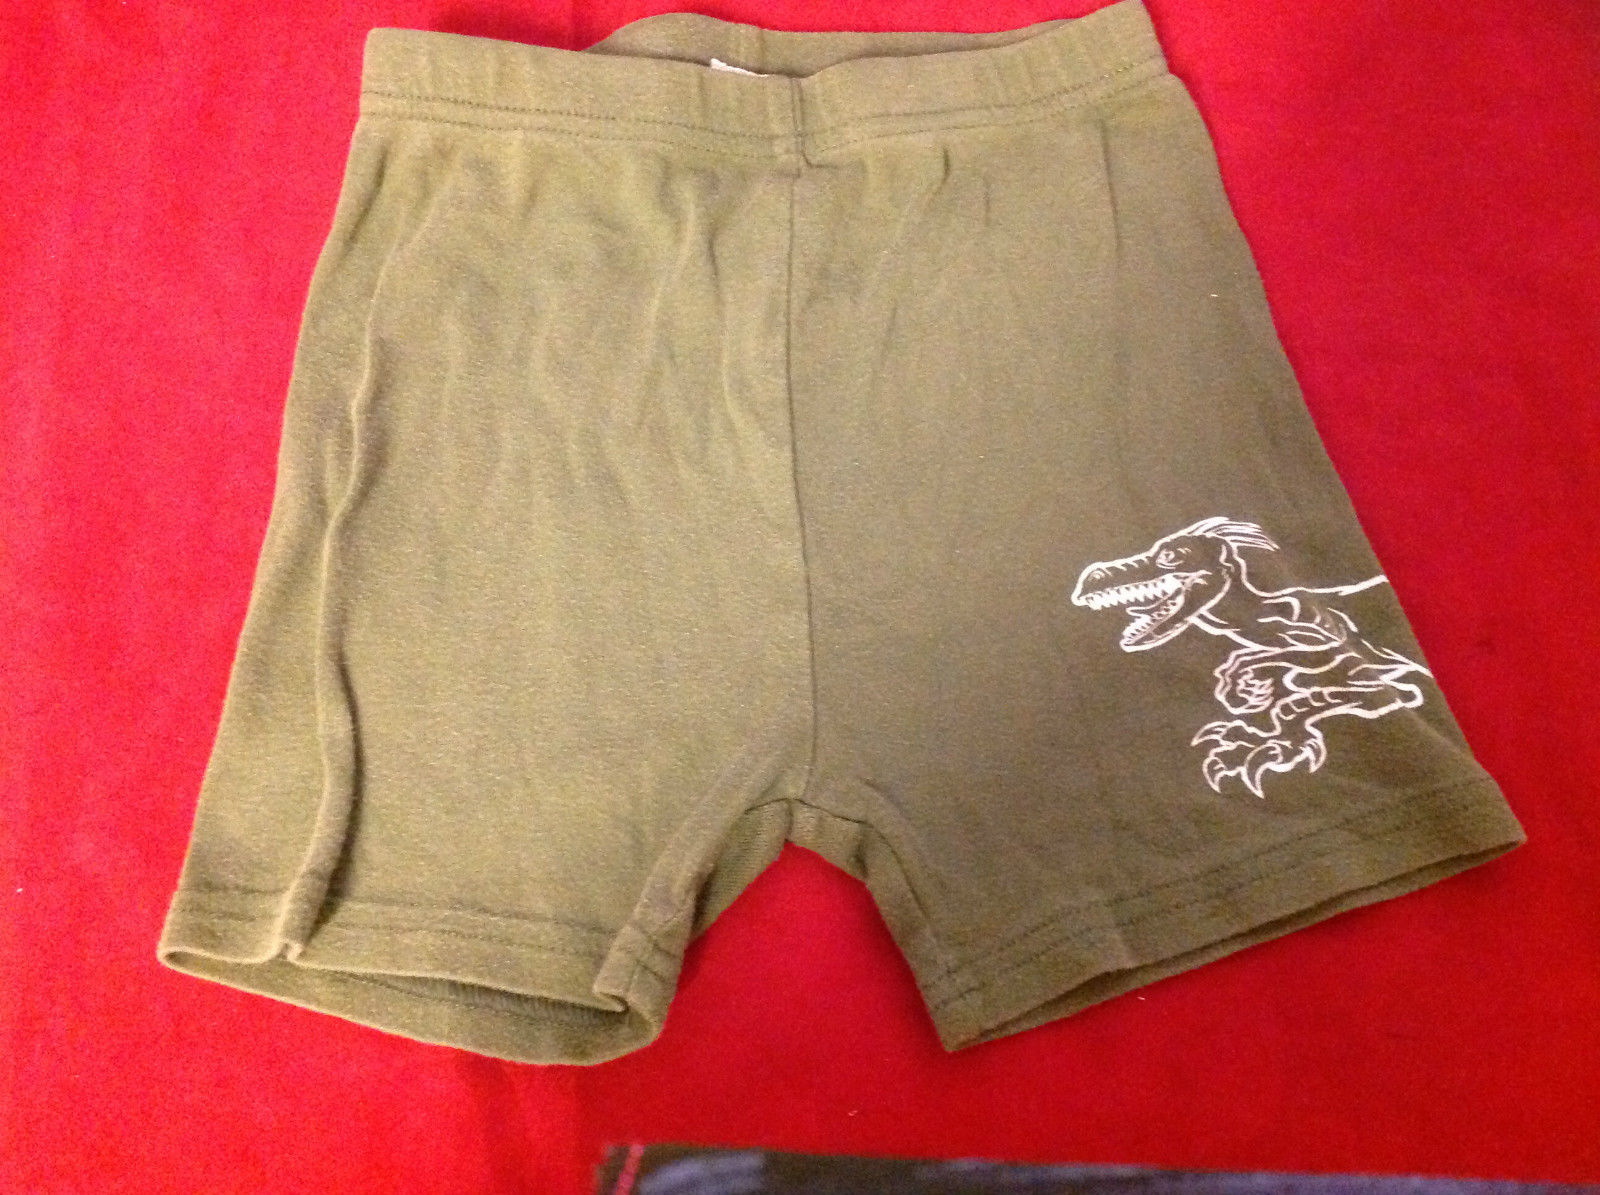 Kids Green Shorts with Picture of Dragon on Leg in White Size 6